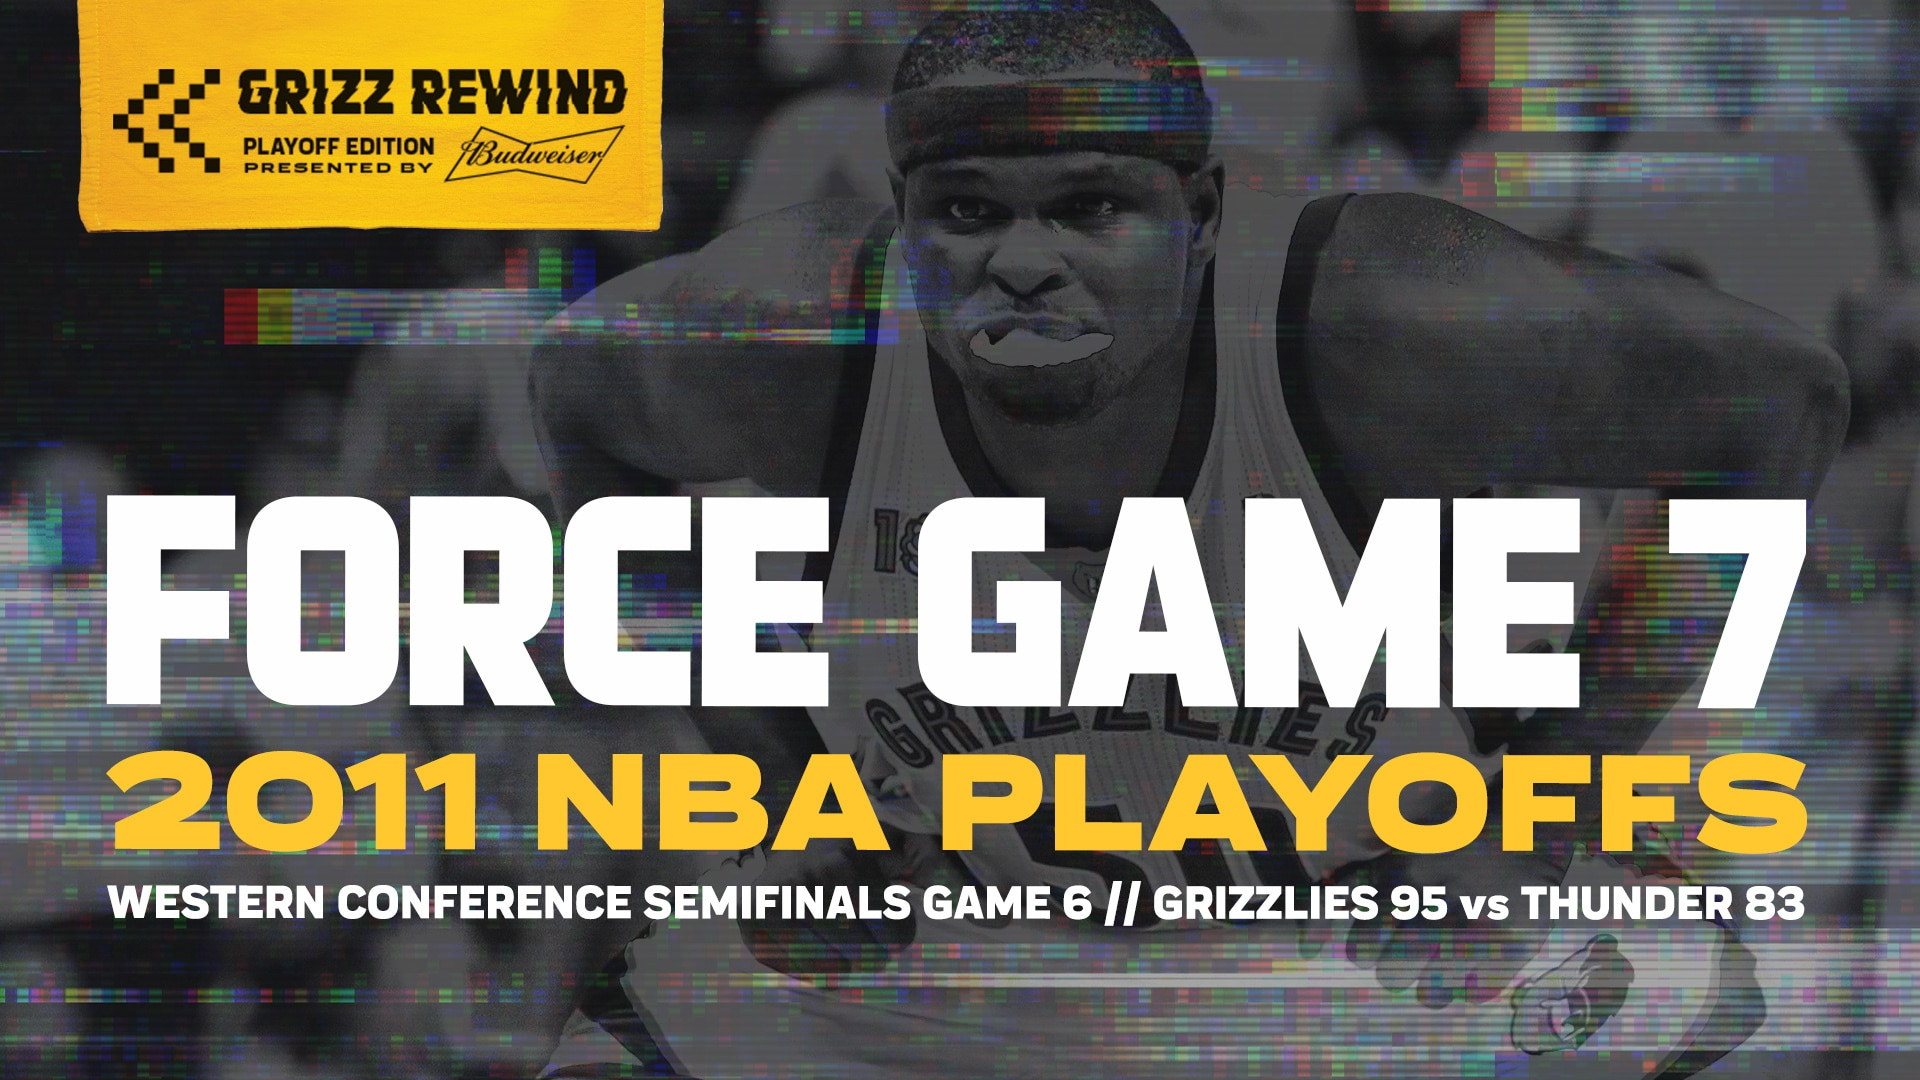 Force Game 7 | Grizz Rewind: Playoff Edition 5.13.11